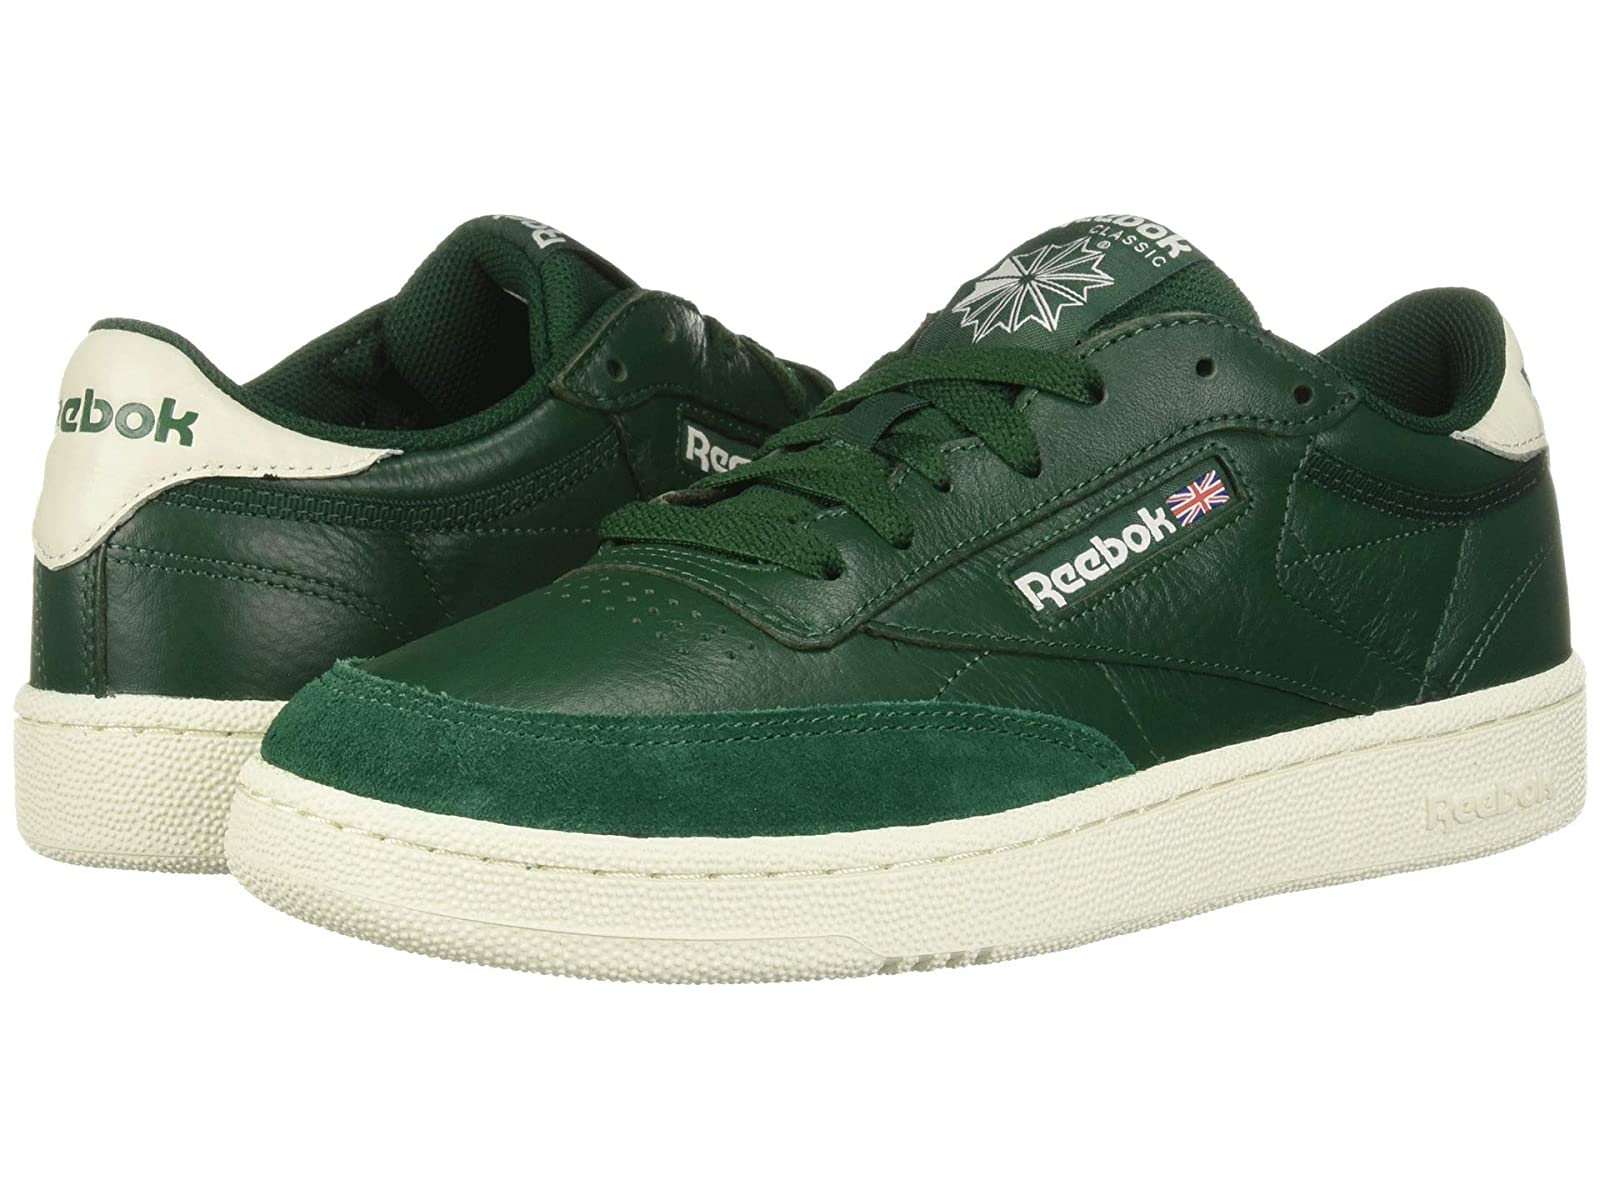 Reebok Lifestyle Club C 85 MUAtmospheric grades have affordable shoes